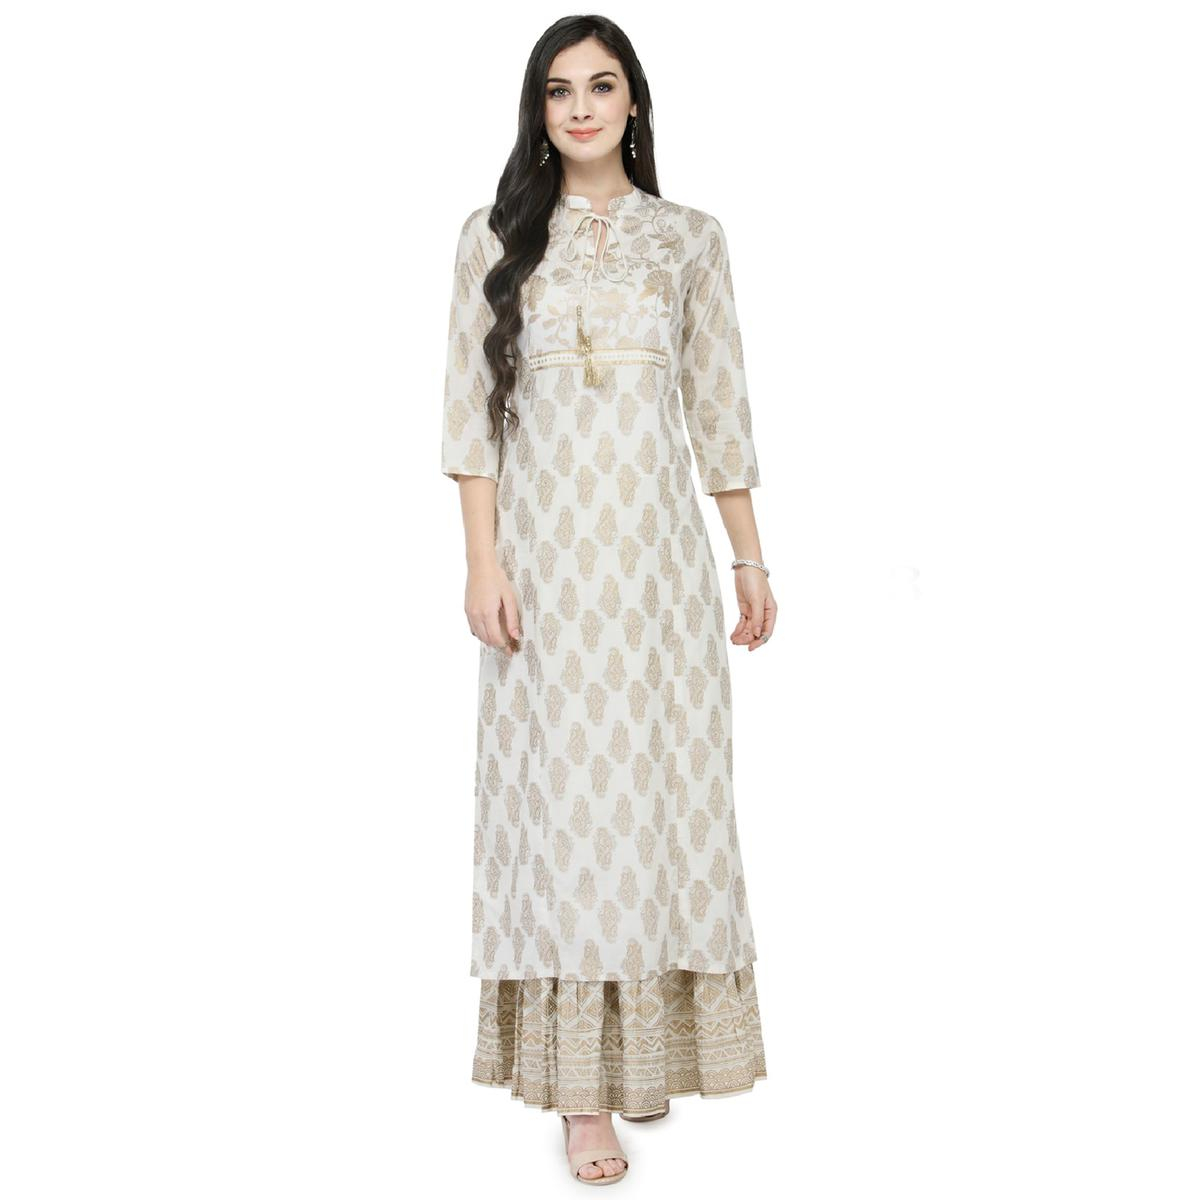 Off-White Colored Printed Cotton Kurti